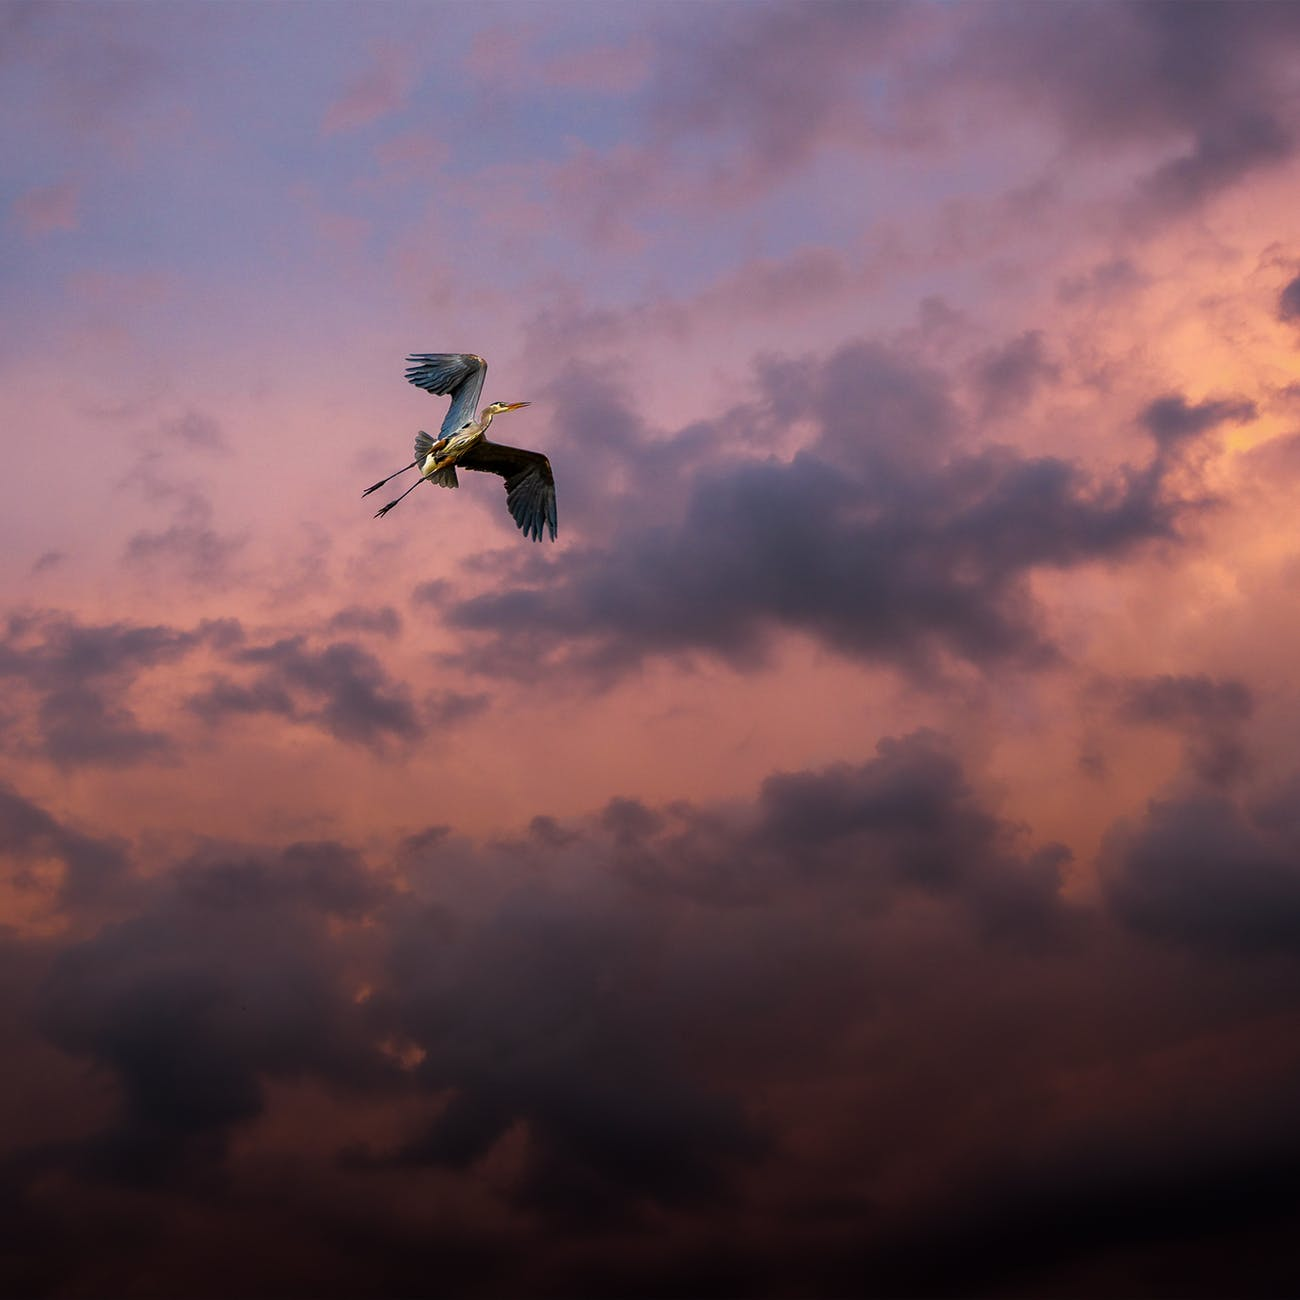 bird flying under cloudy sky